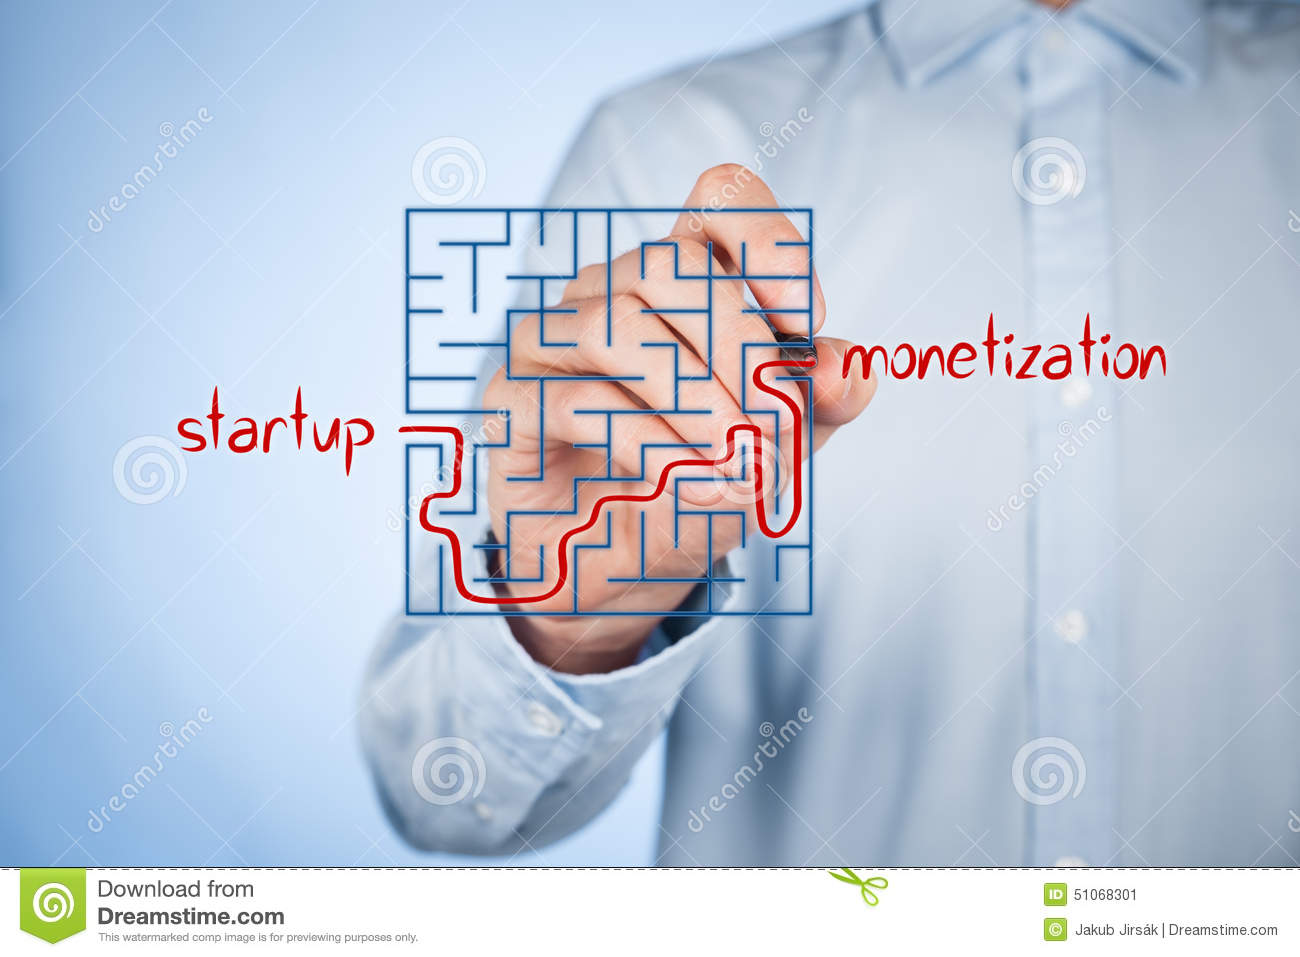 Differences in Business Models & Monetization Models